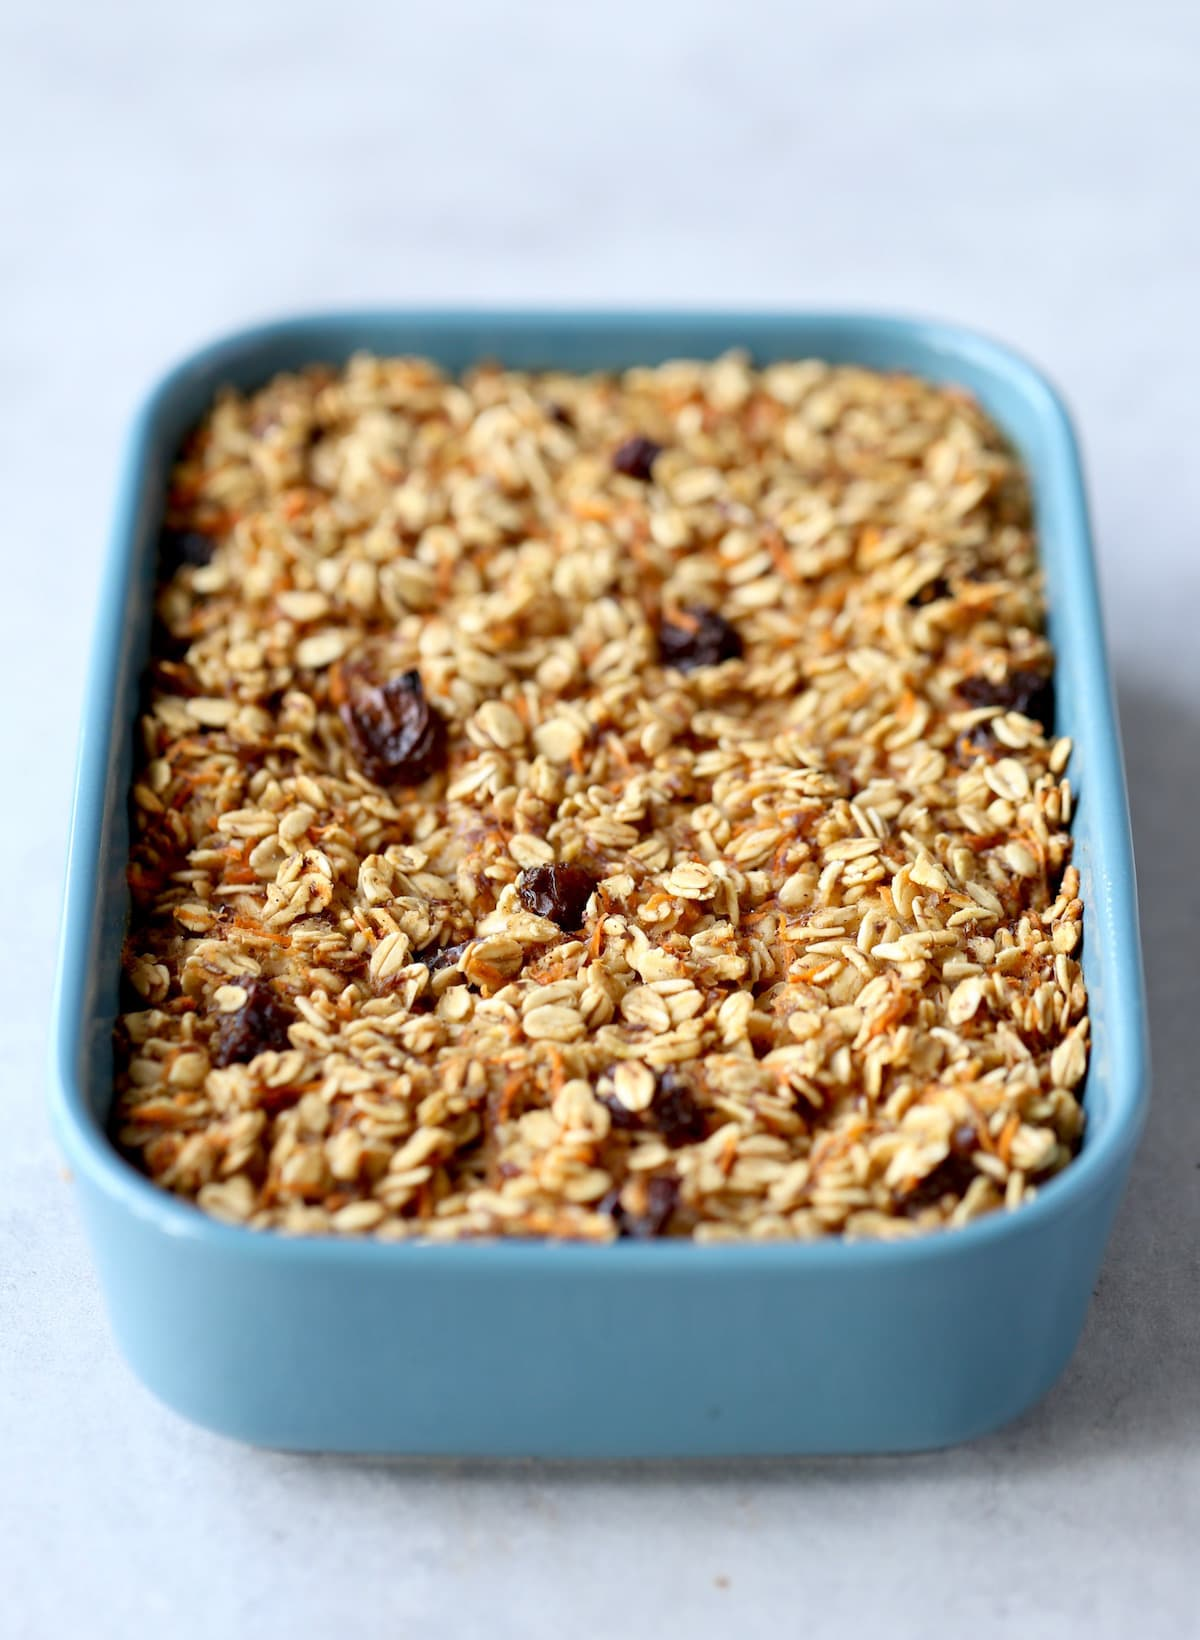 carrot caked baked oatmeal right out of the oven